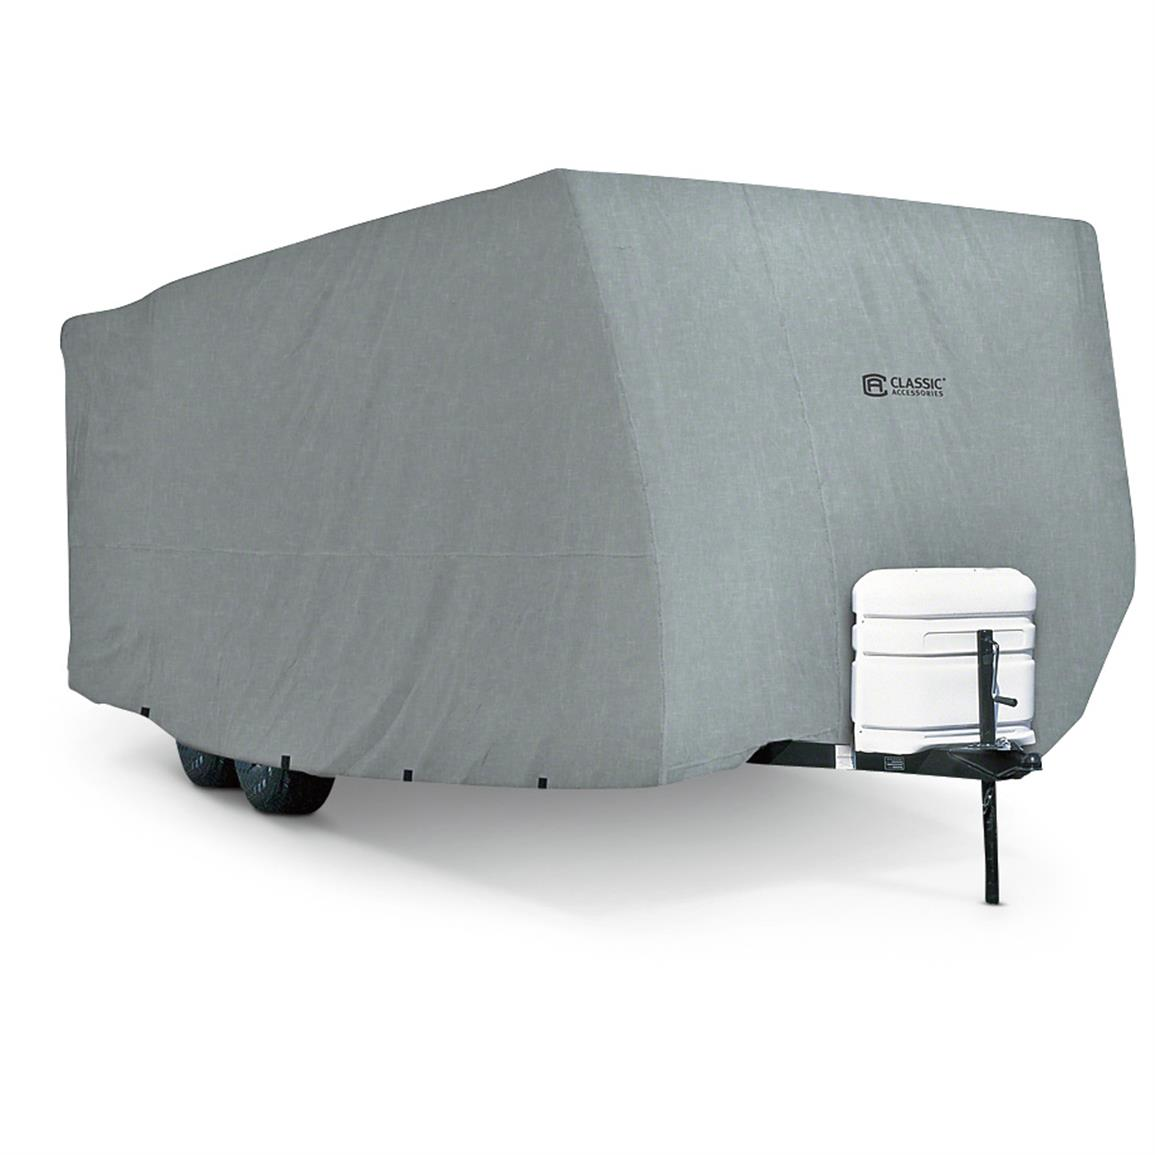 Classic Accessories PolyPro 1 Travel Trailer Cover  284822 RV Covers at Sportsmans Guide